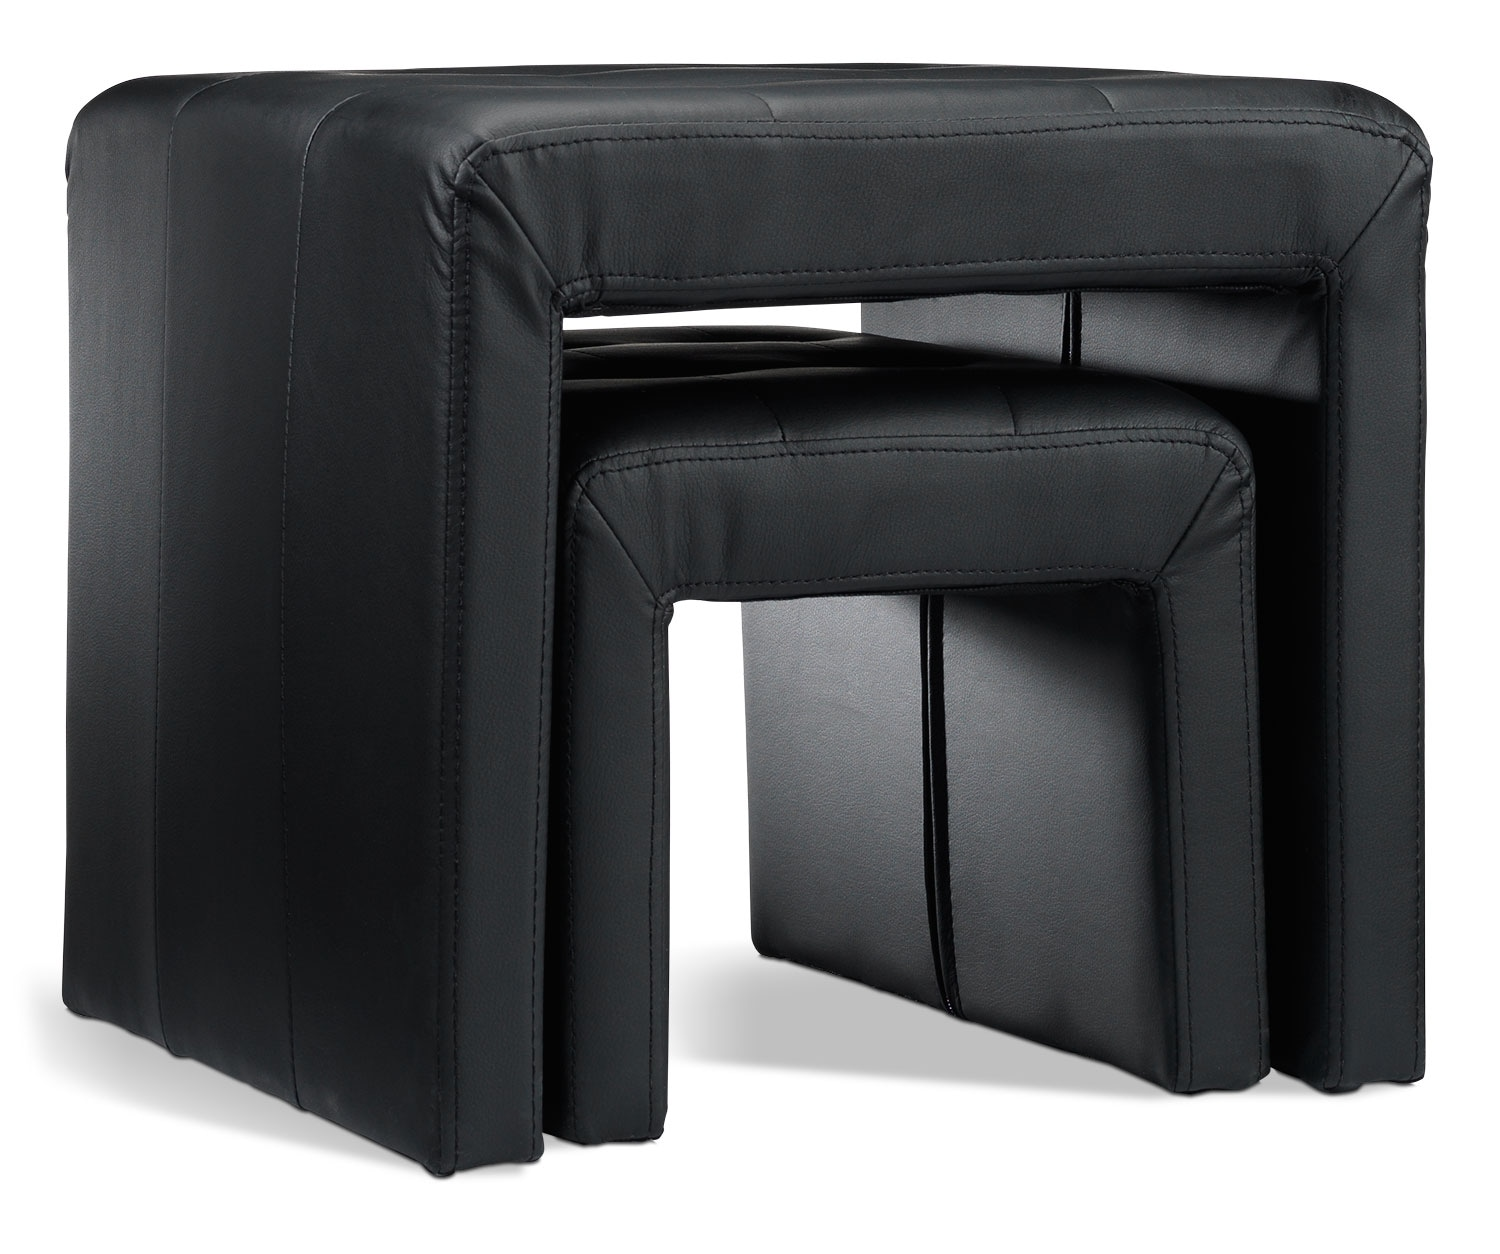 Accent Chair With Nesting Ottoman: Clark Nesting Ottomans - Black